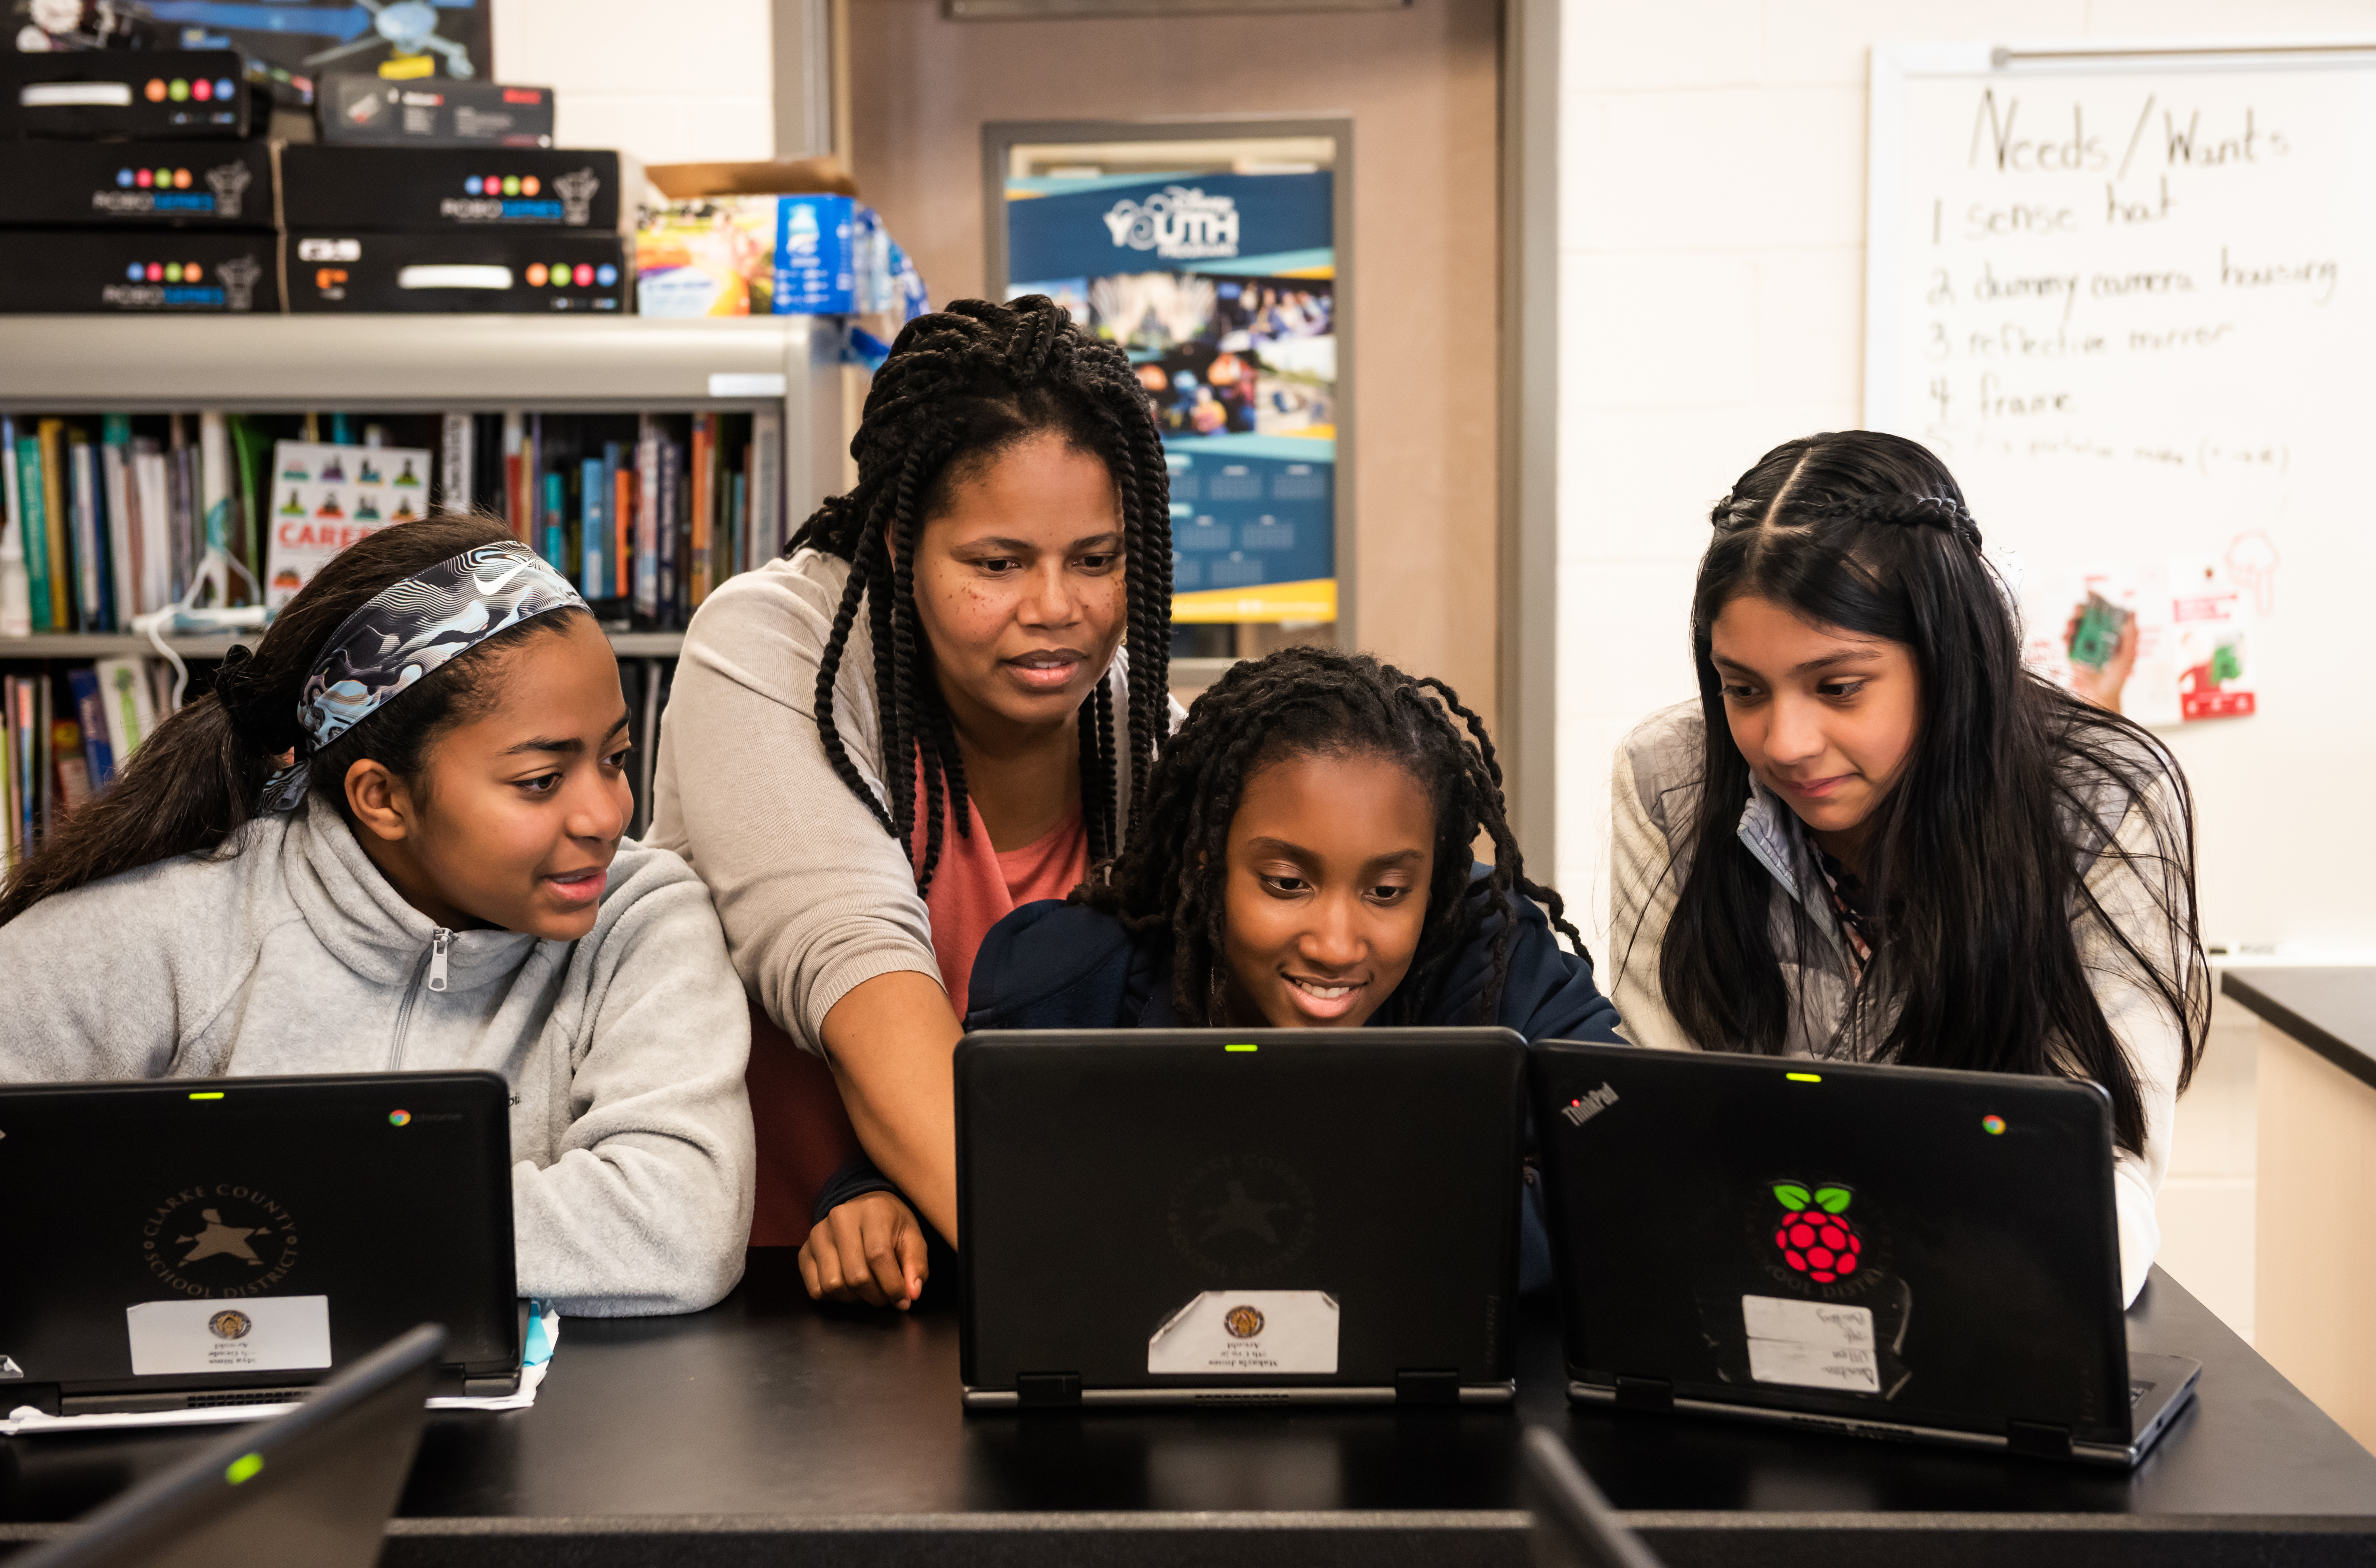 A female computing educator with three female students at laptops in a classroom.